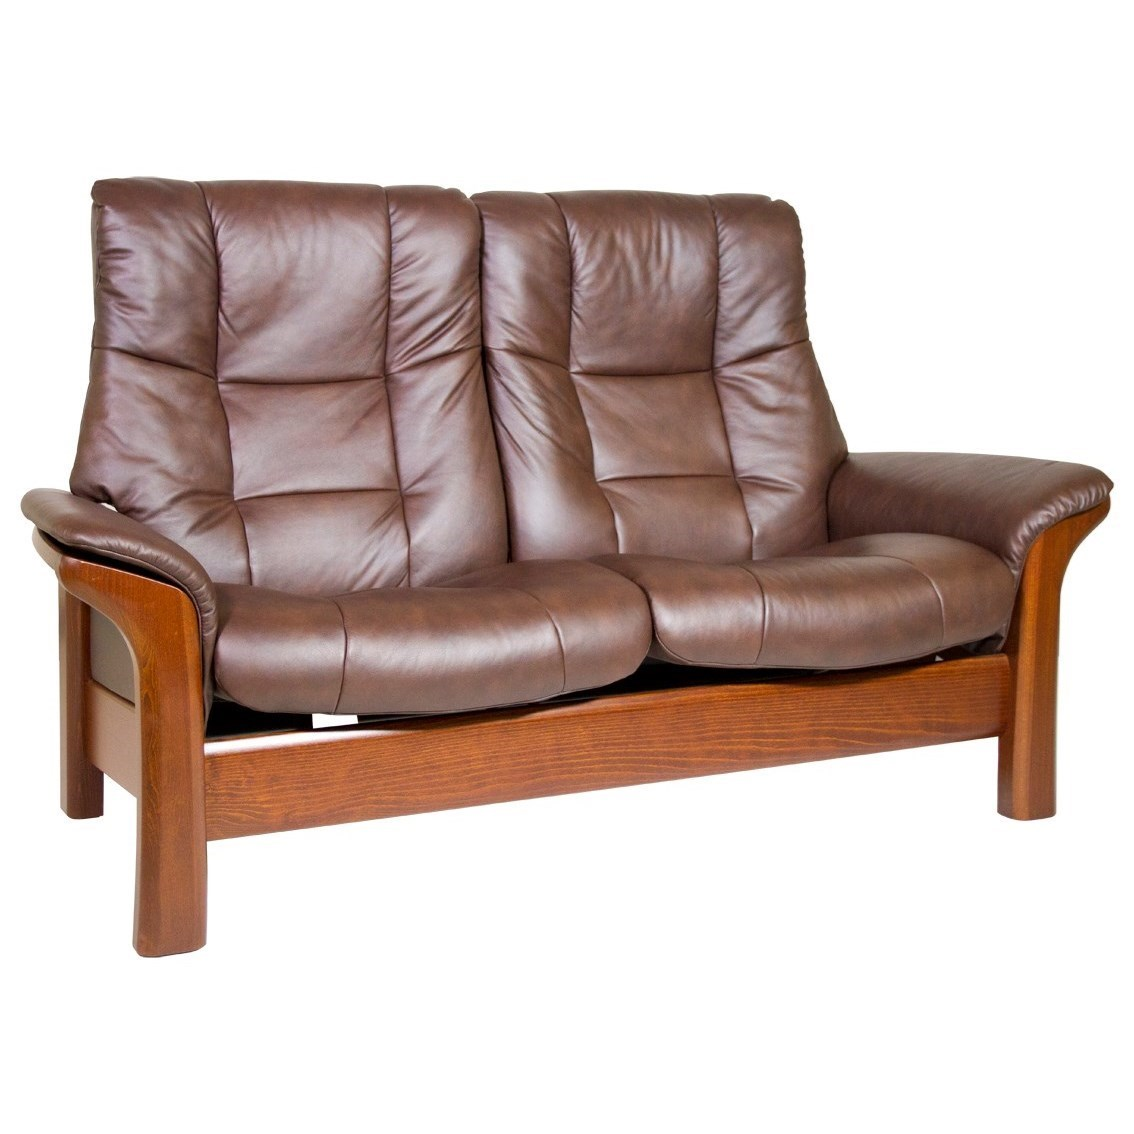 ekornes stressless sofa bed microfiber leather look couch paradise by